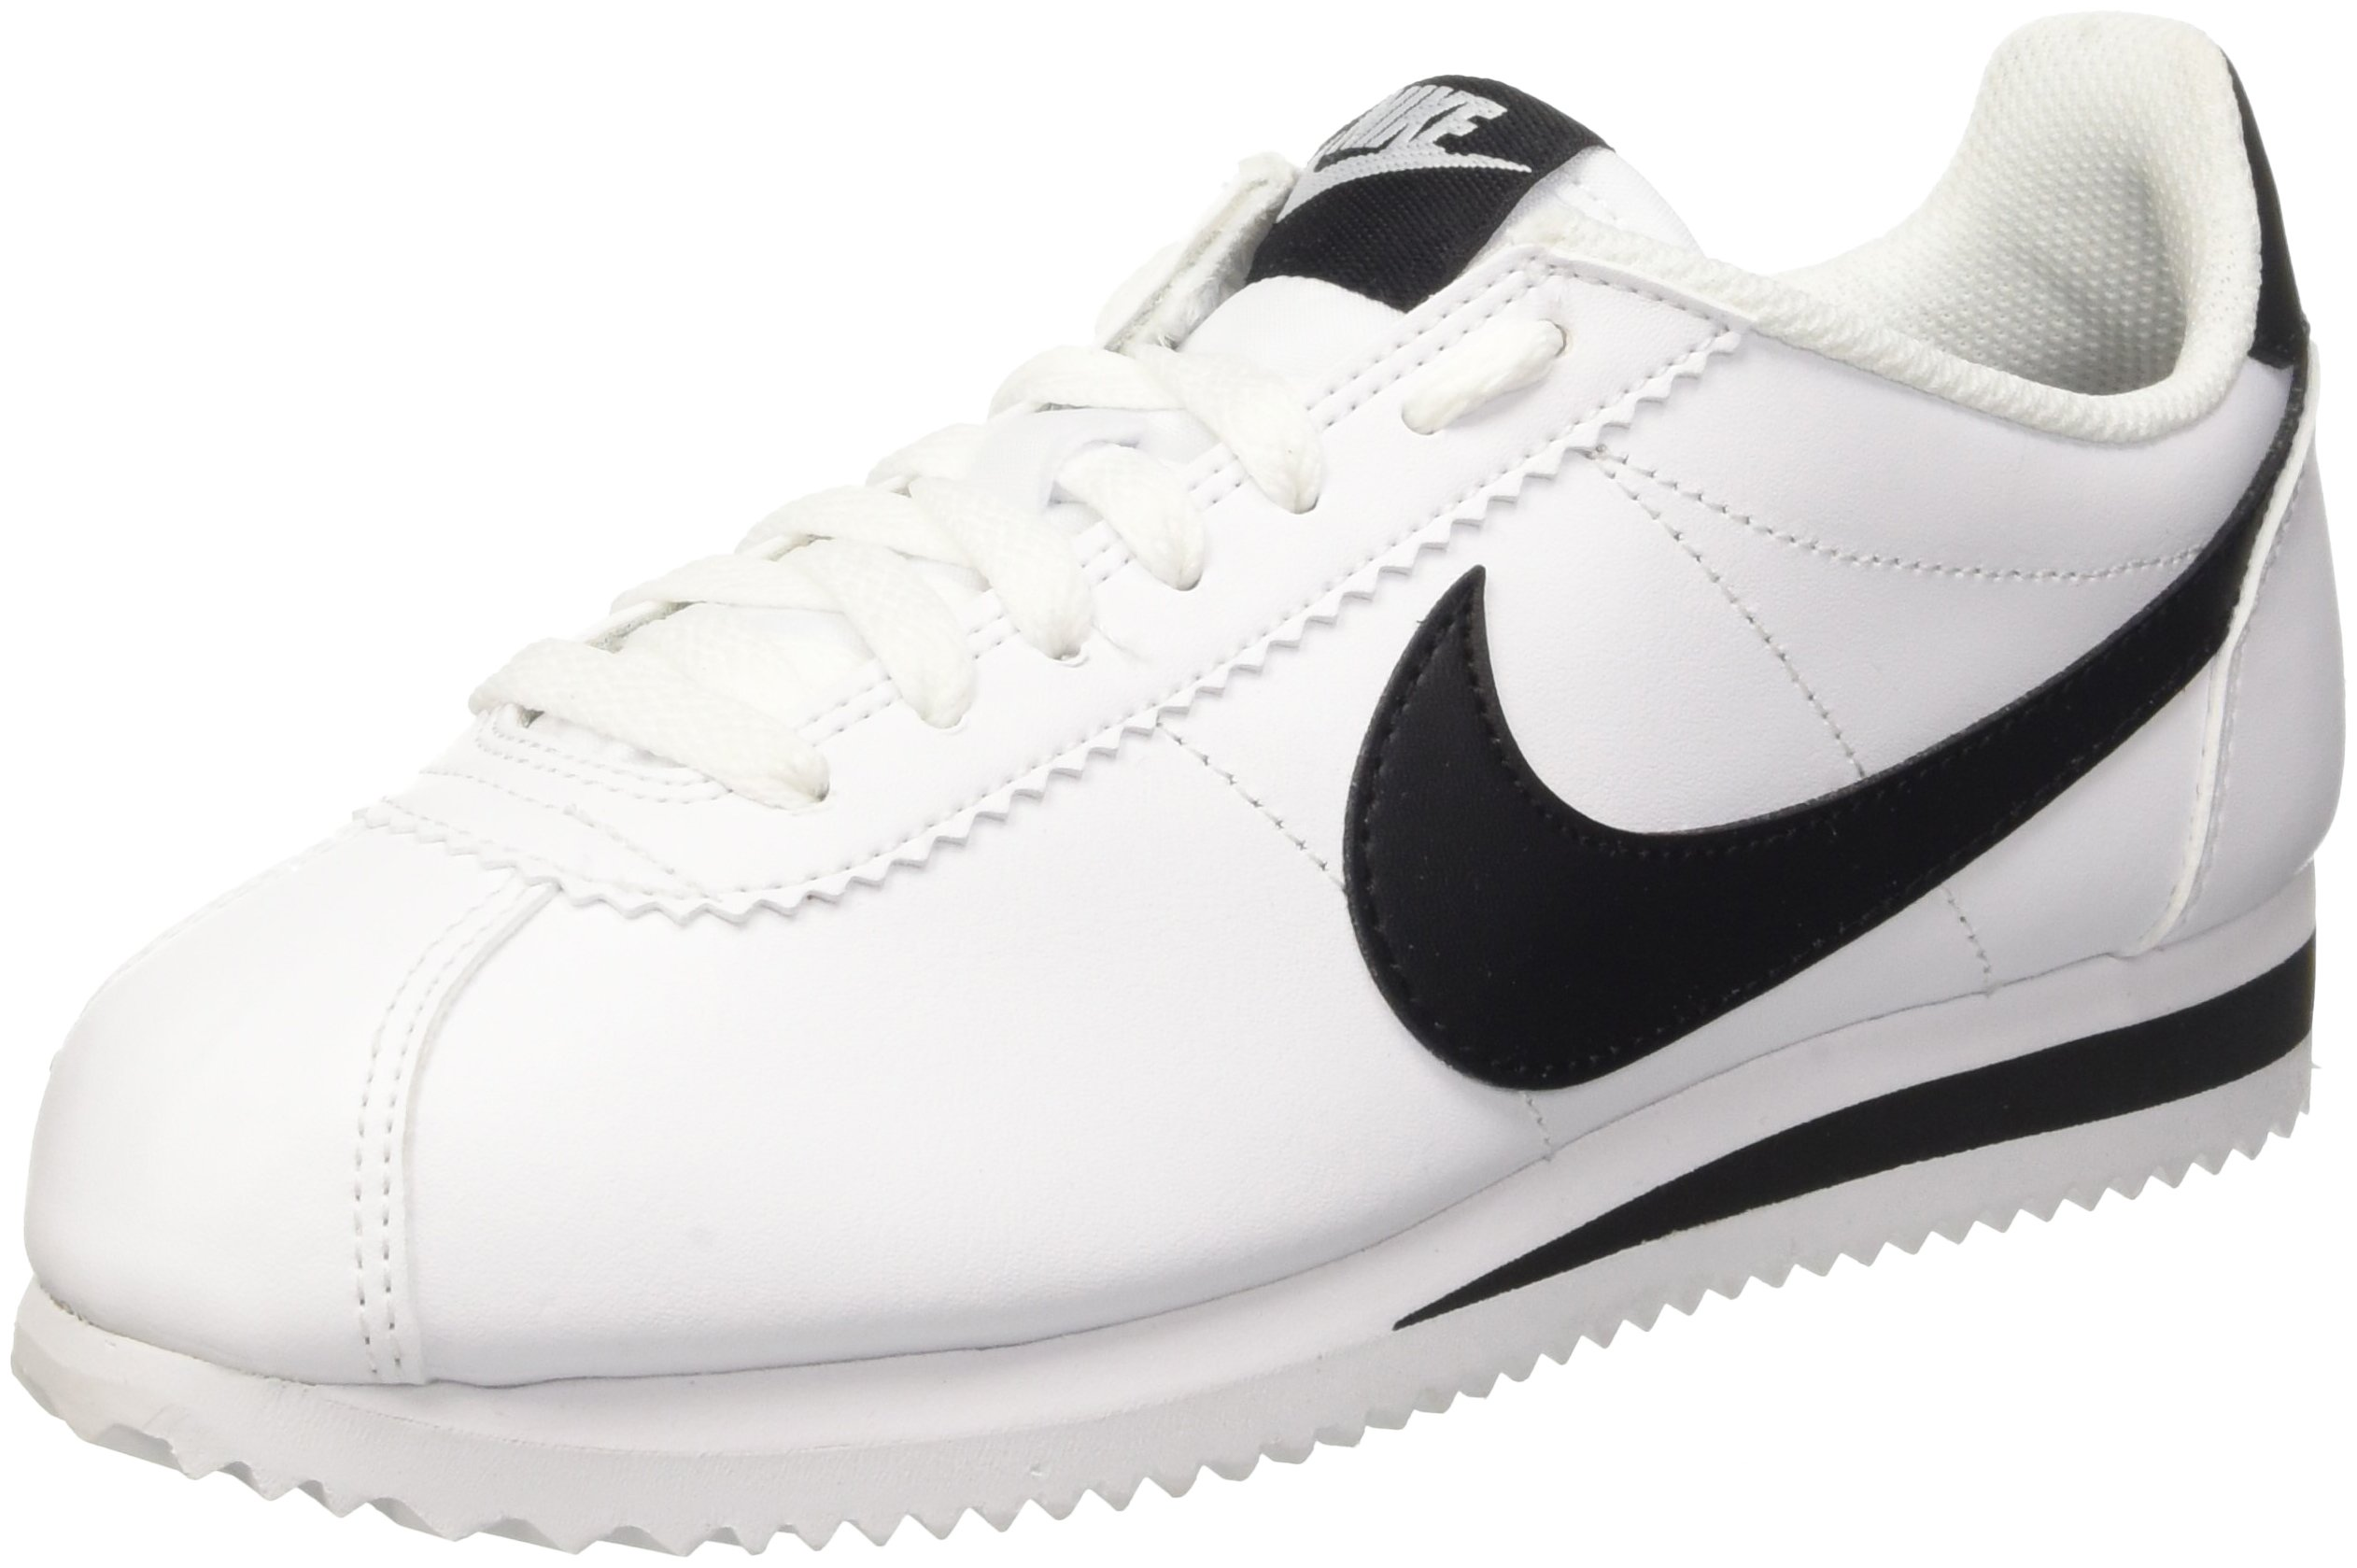 Nike Womens Classic Cortez Leather White/Black/White Casual Shoe 9 Women US